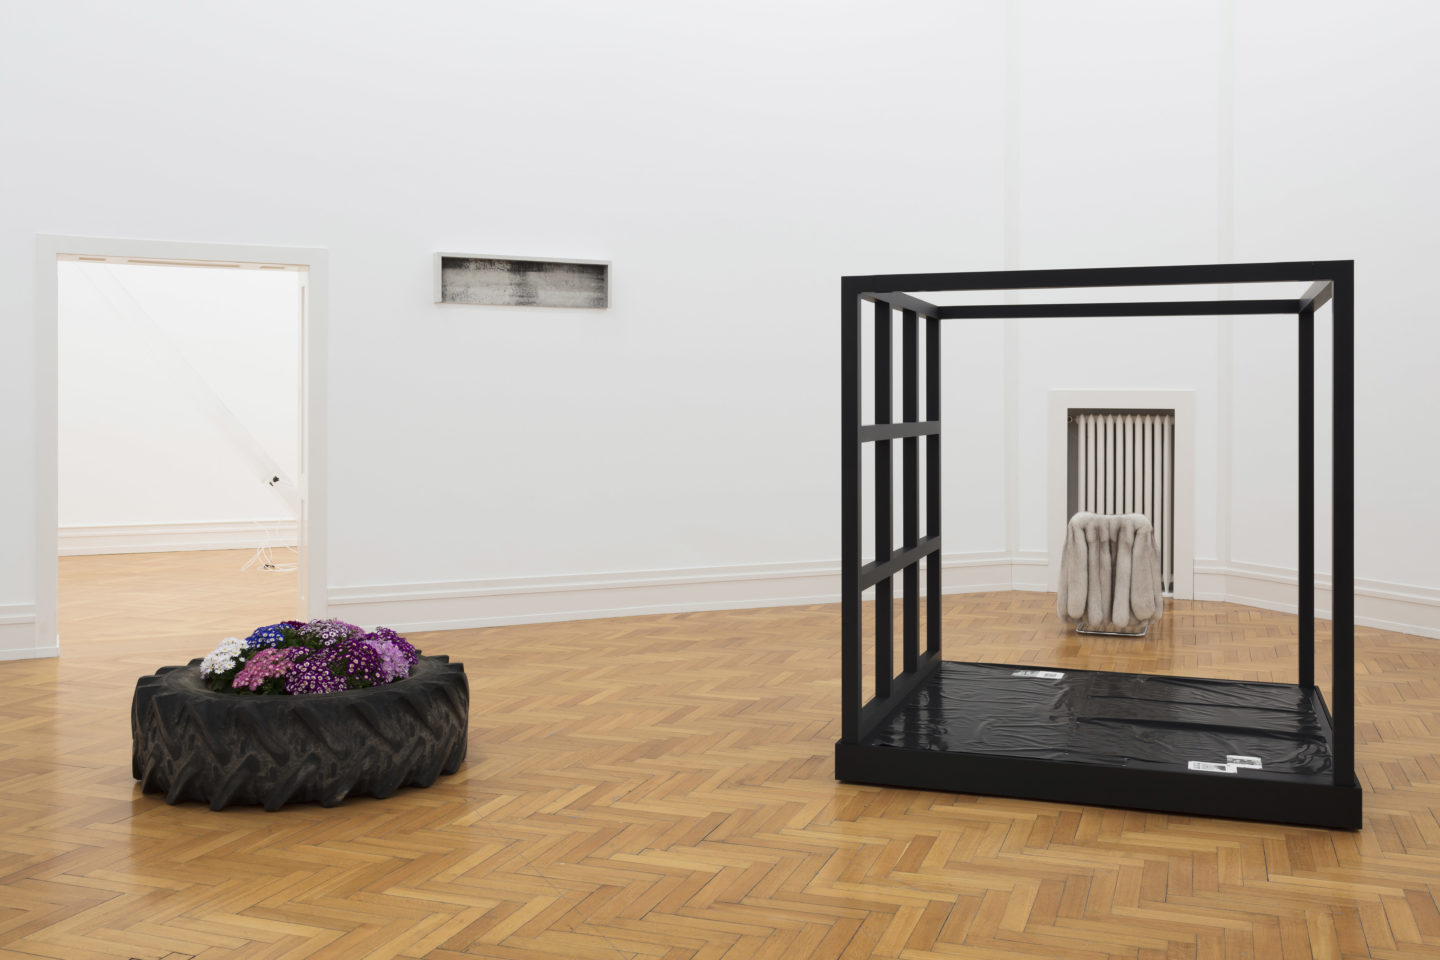 "Installation View ""Die Zelle"" at Kunsthalle Bern, 2018 / Photo: Gunnar Meier"